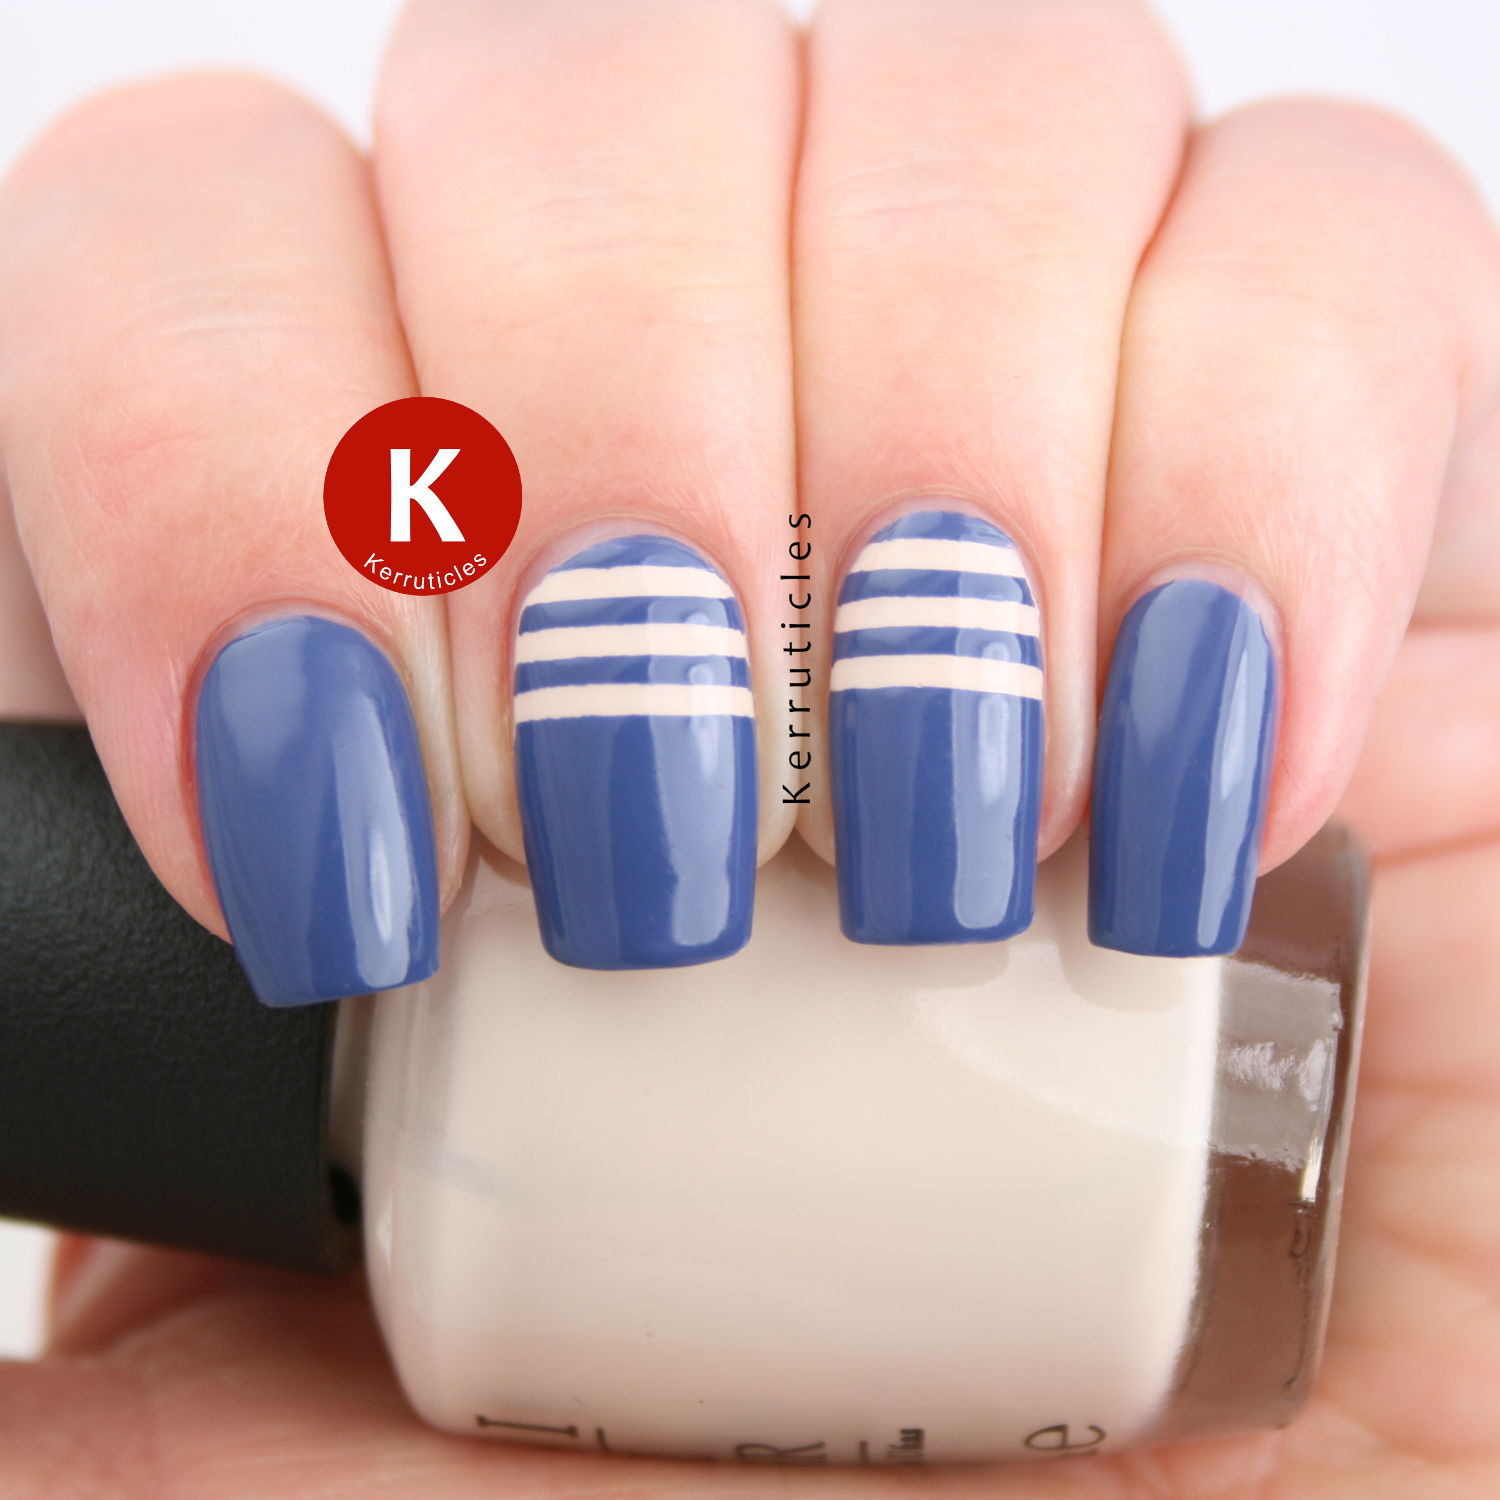 Rimmel Navy Seal with cream stripes